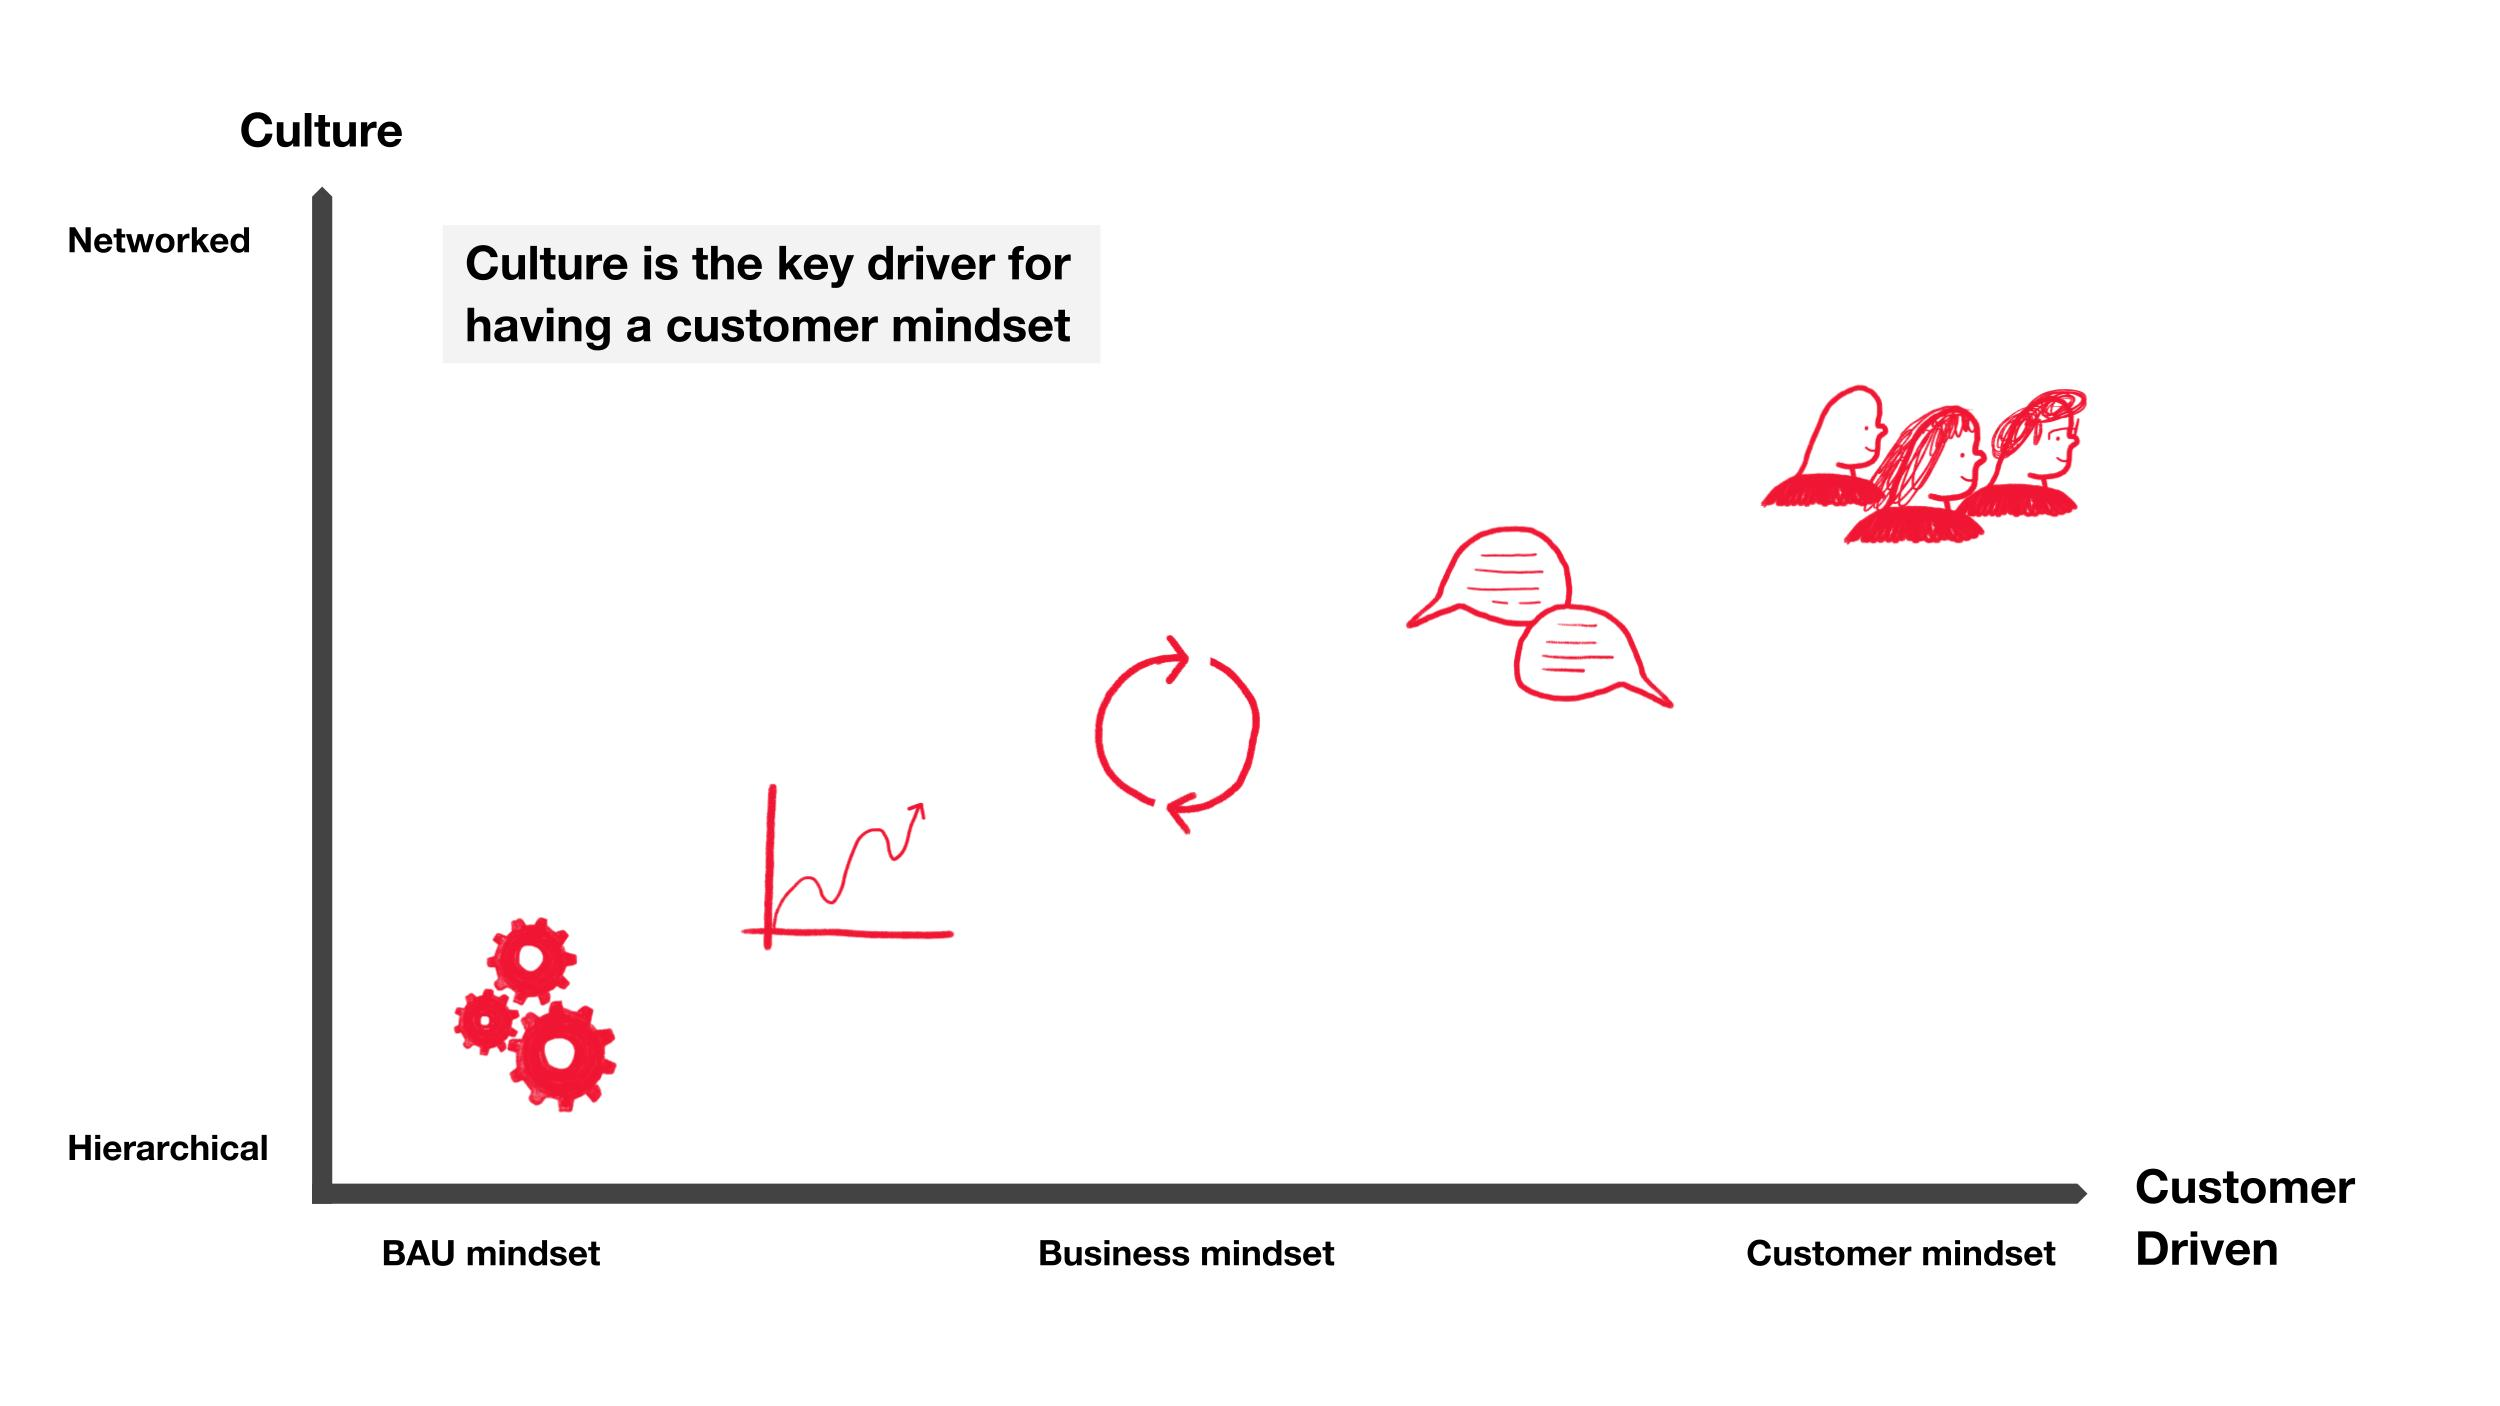 a graphic showing an axis with a scale of BAU to Customer centric on one axis, and Hierarchical to Networked on the other. The more networked and customer-centric